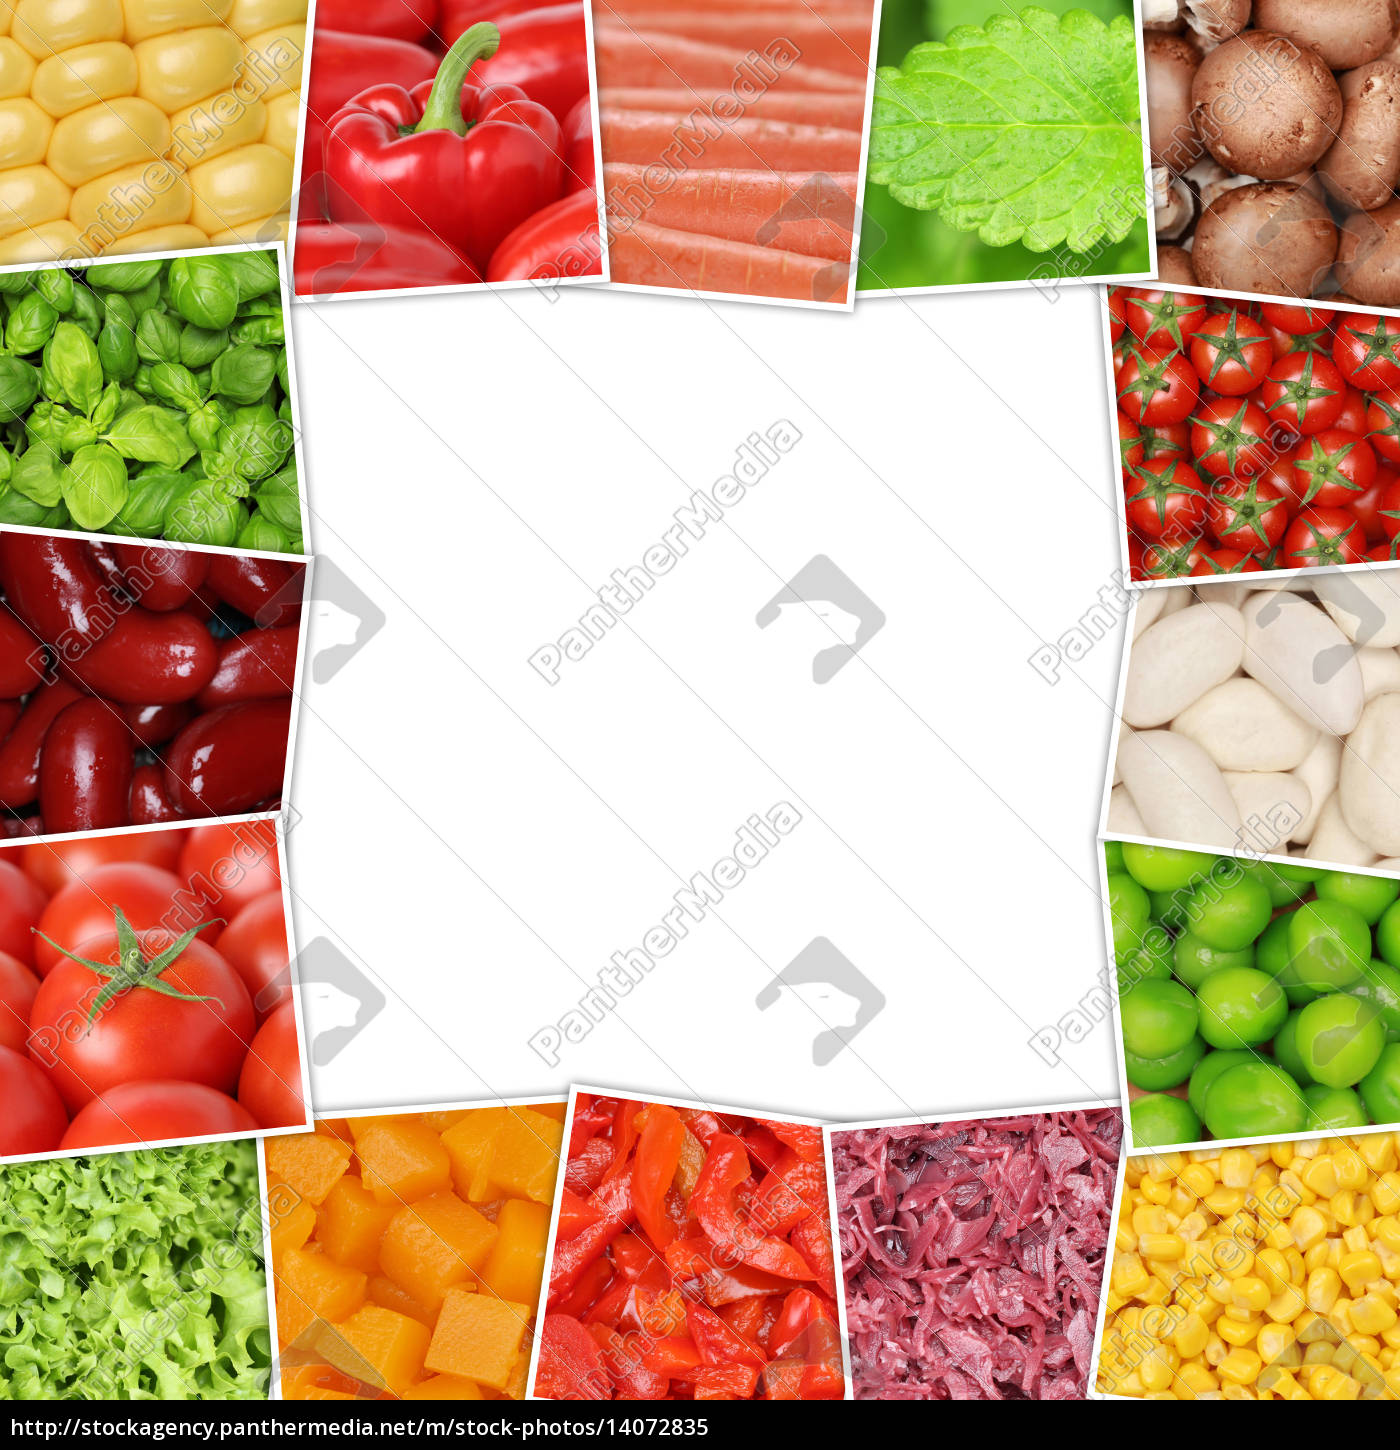 frame, of, vegetables, such, as, tomatoes, peppers, lettuce, mushrooms, herbs - 14072835